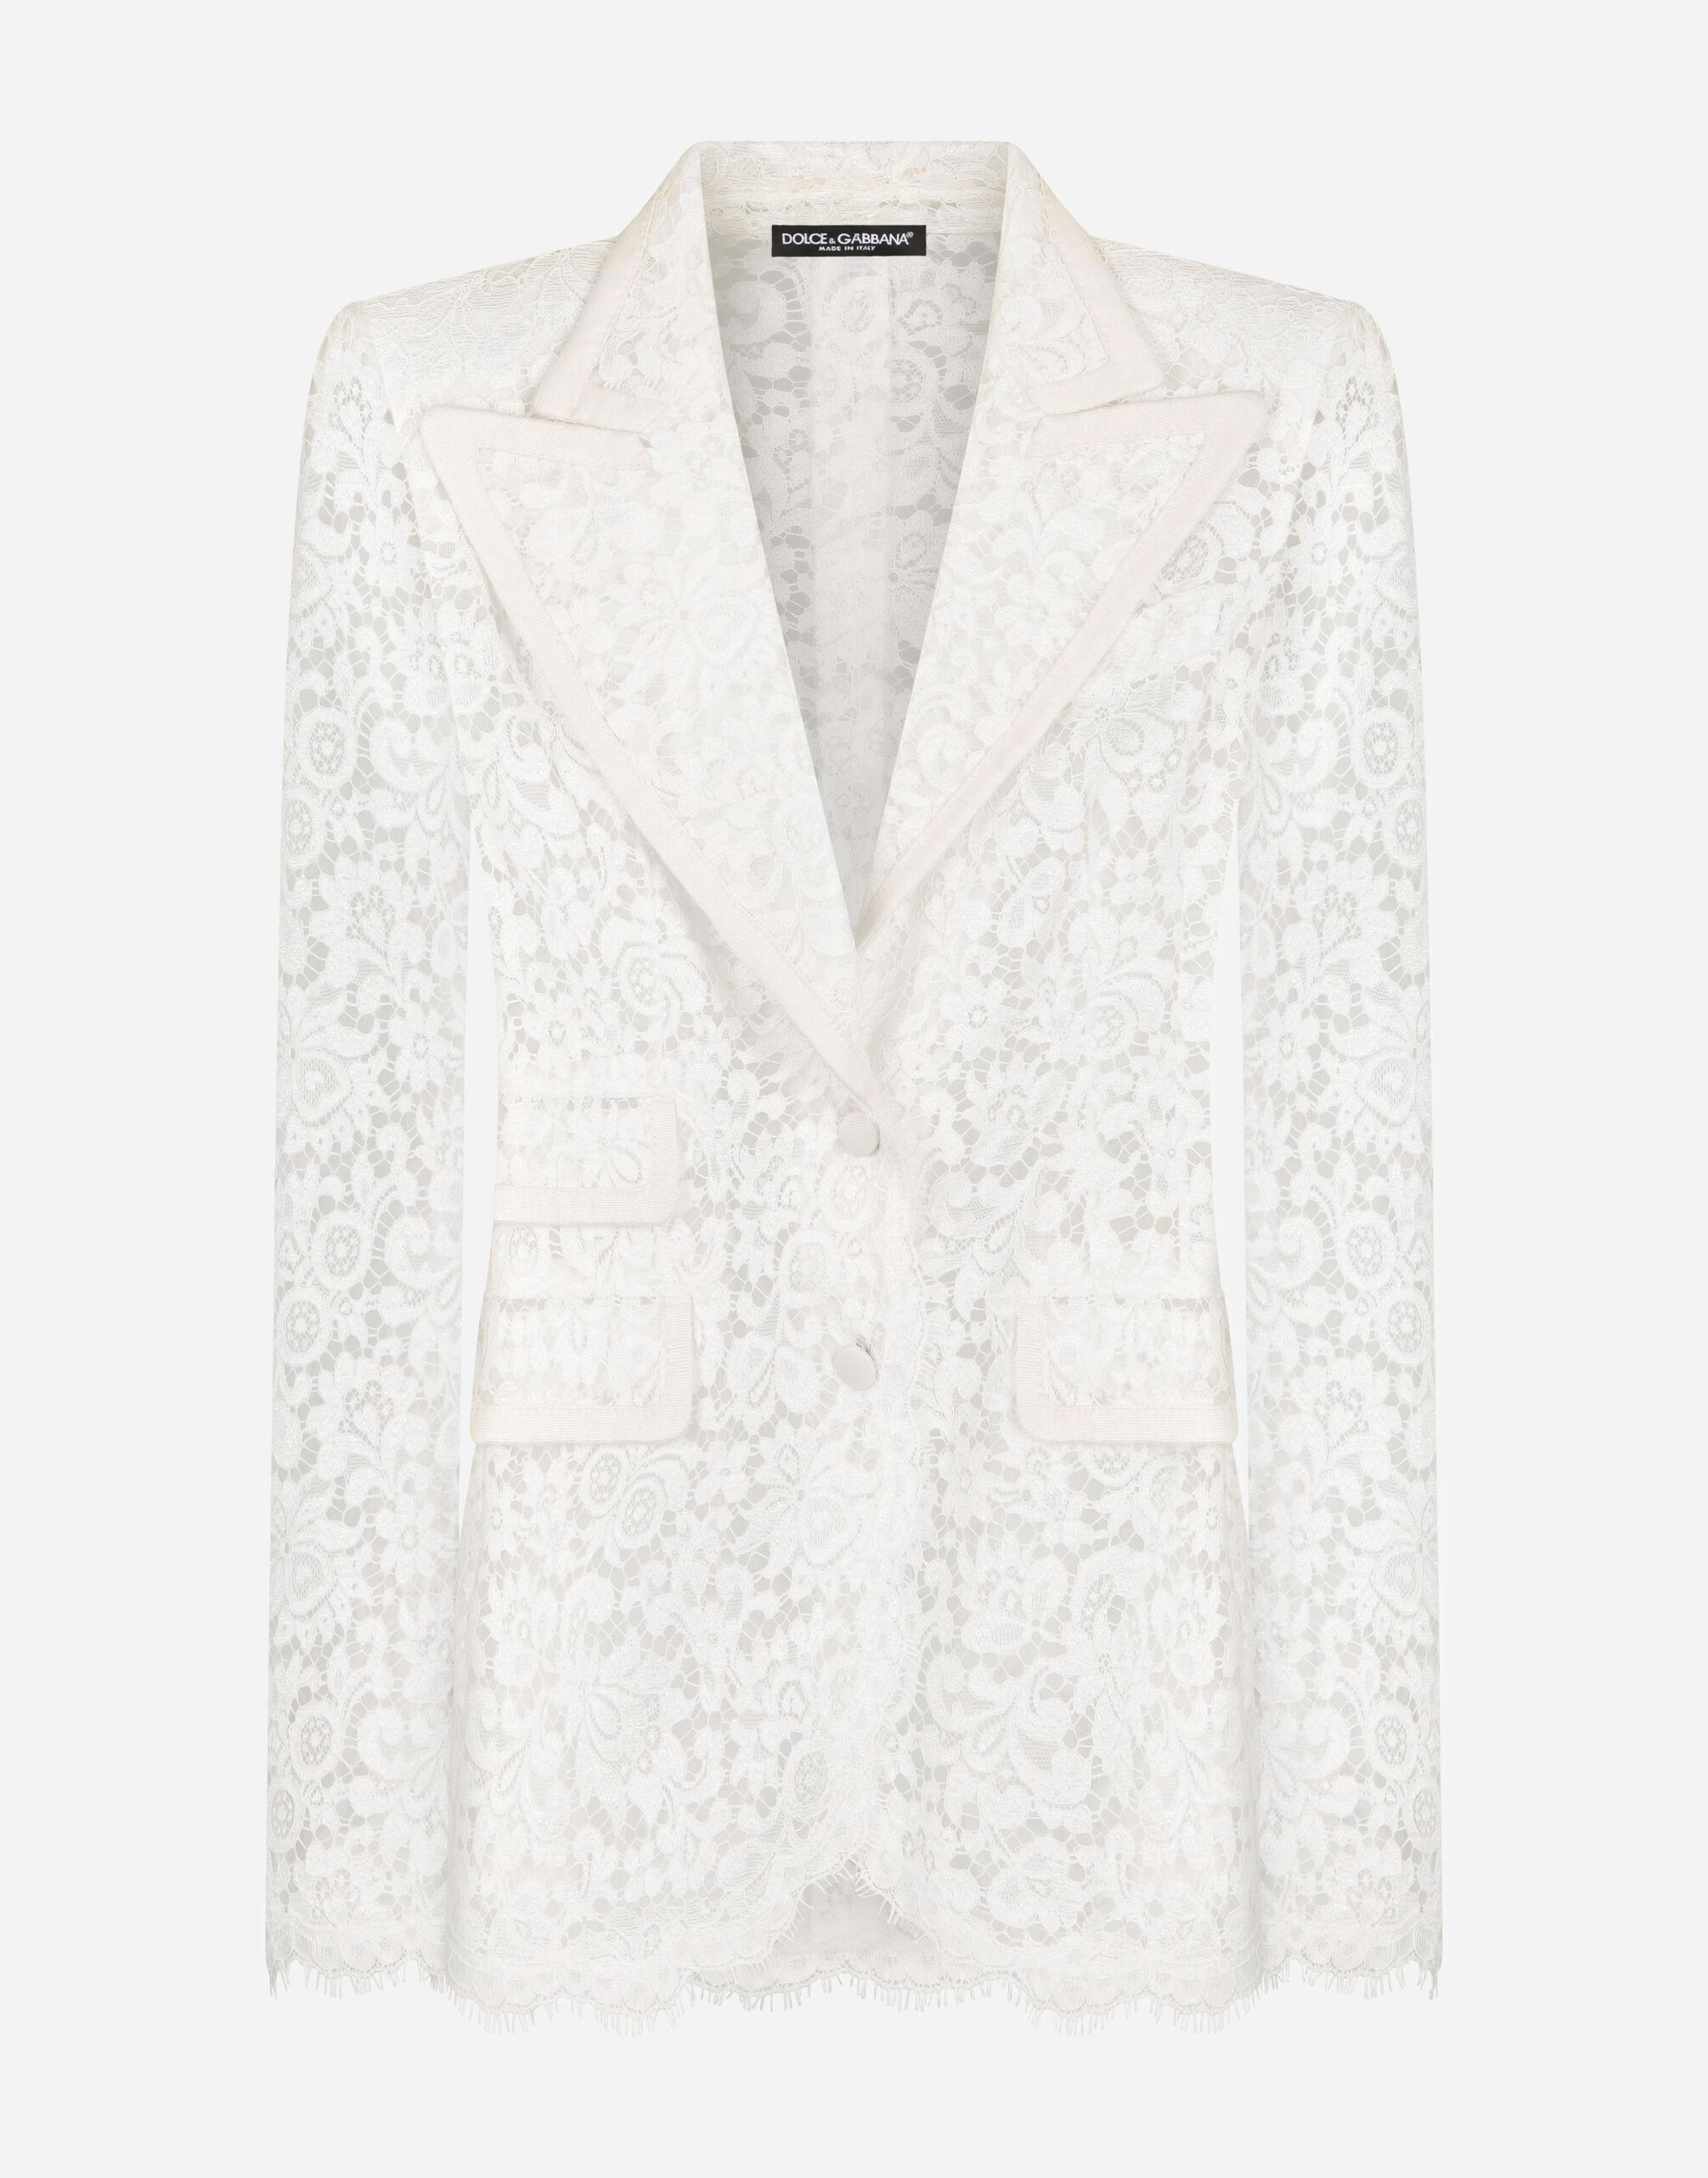 Lace jacket with edge detailing 4